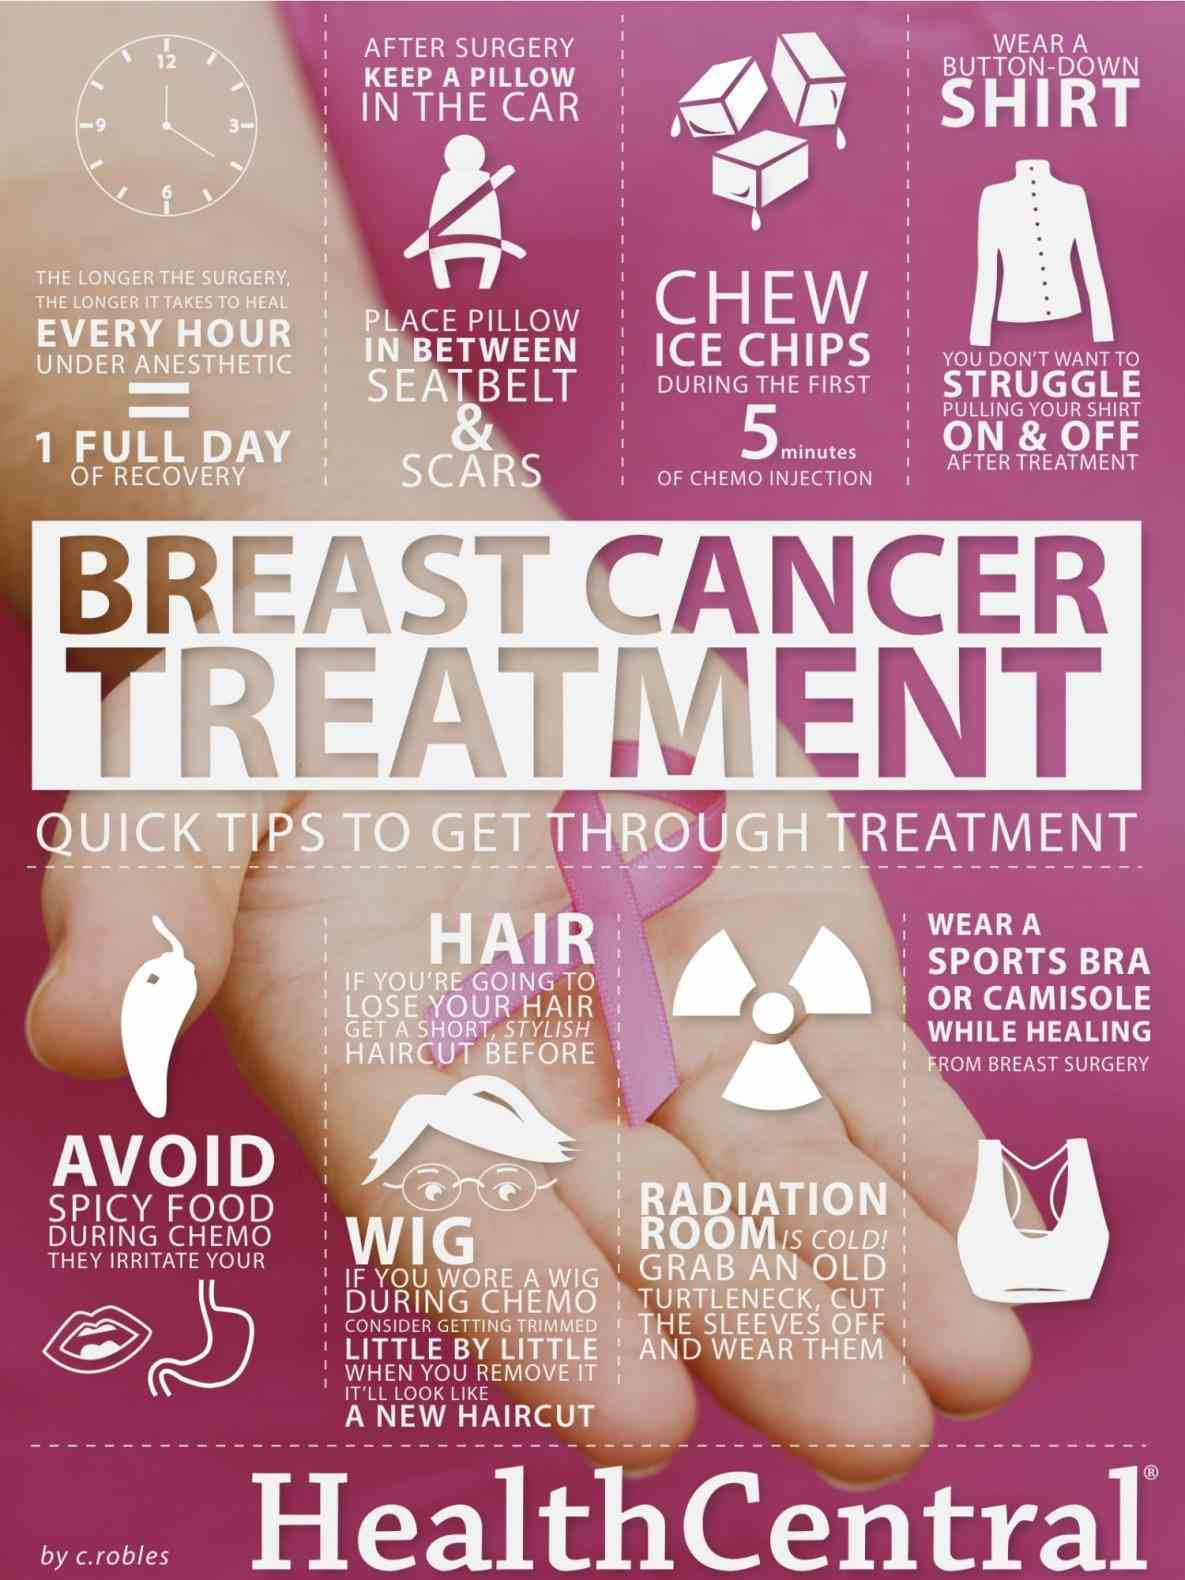 Breast Cancer Treatment And Prevention Pictures Wallpapers